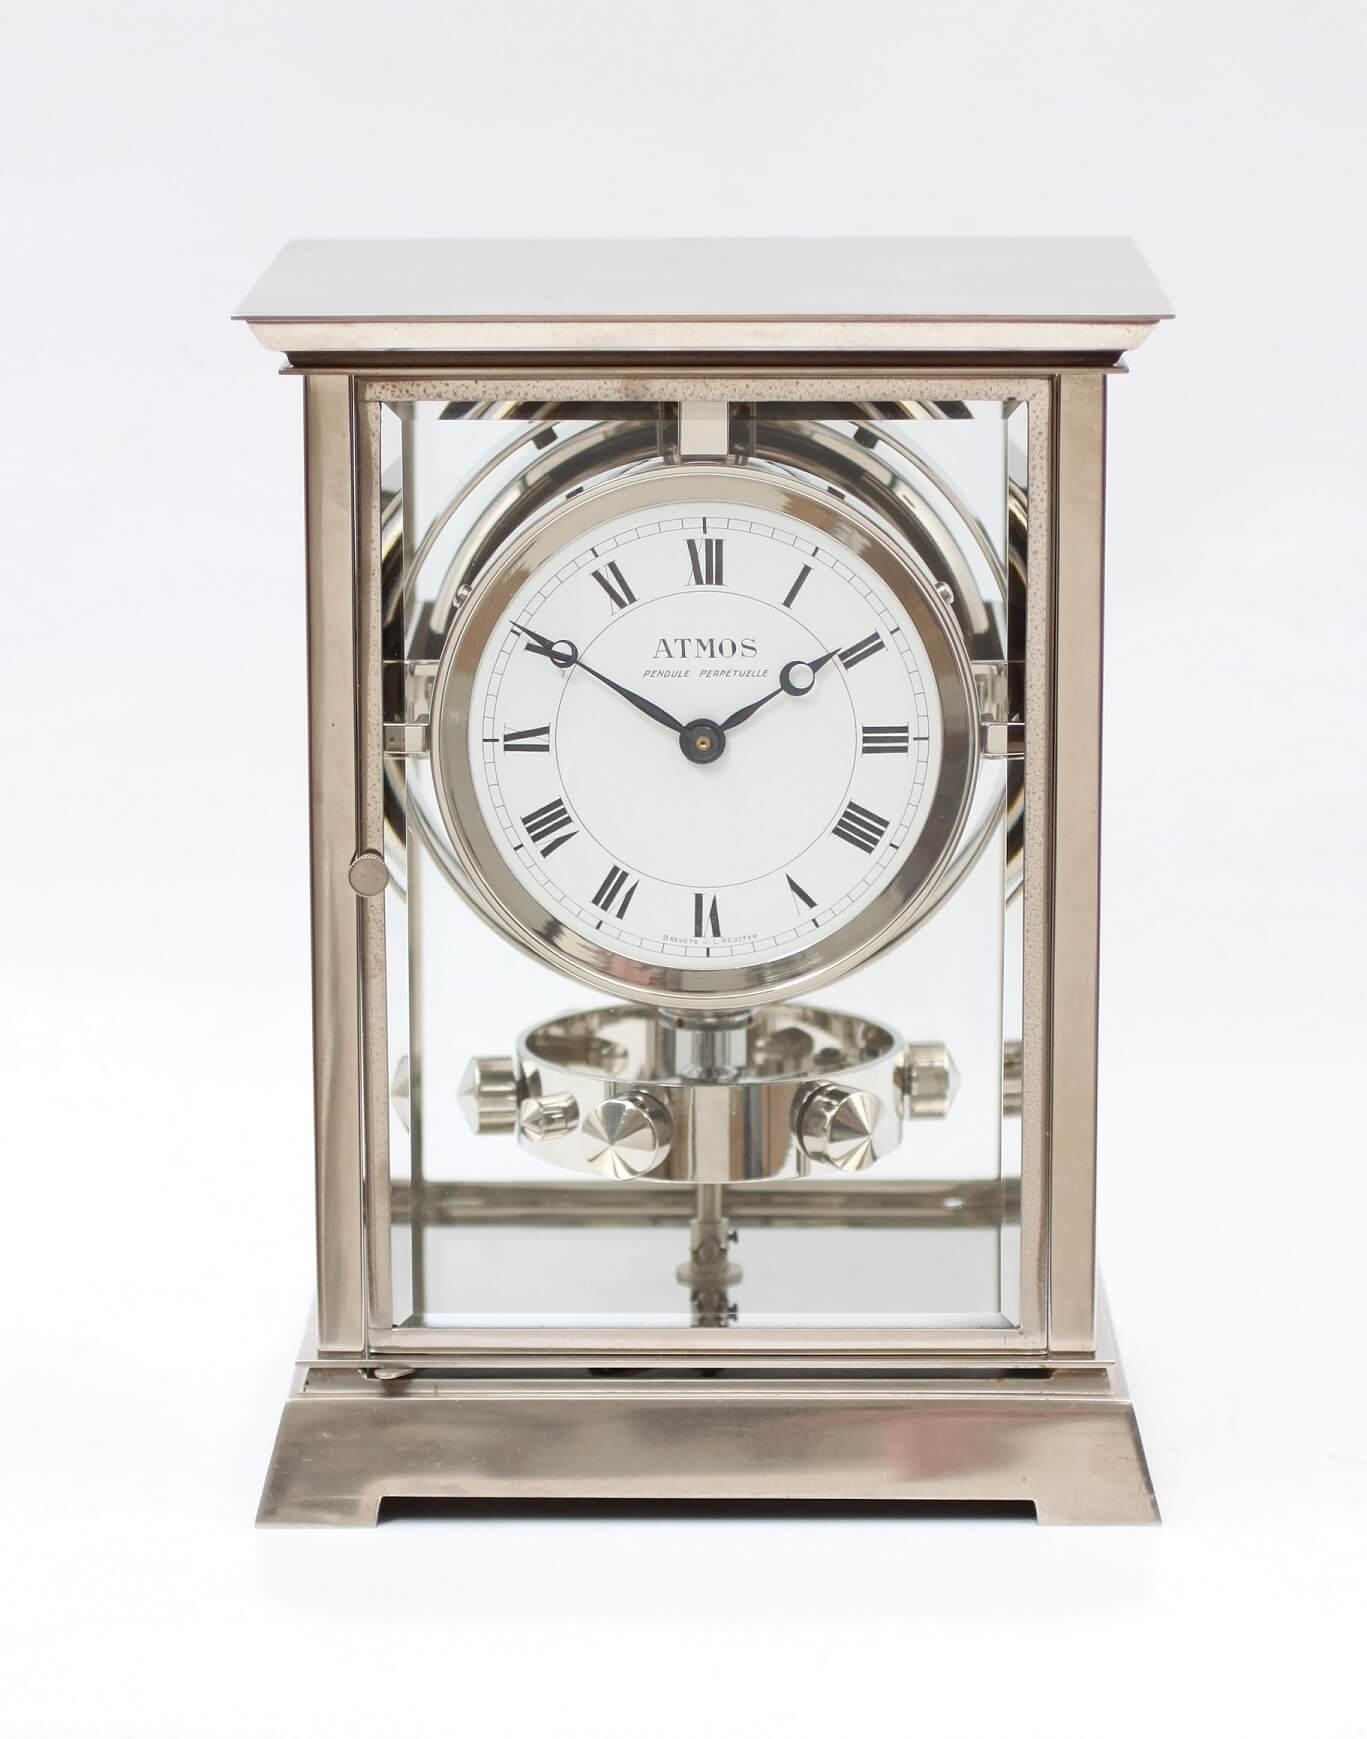 French Reutter Atmos Nickel Plated Circa 1930